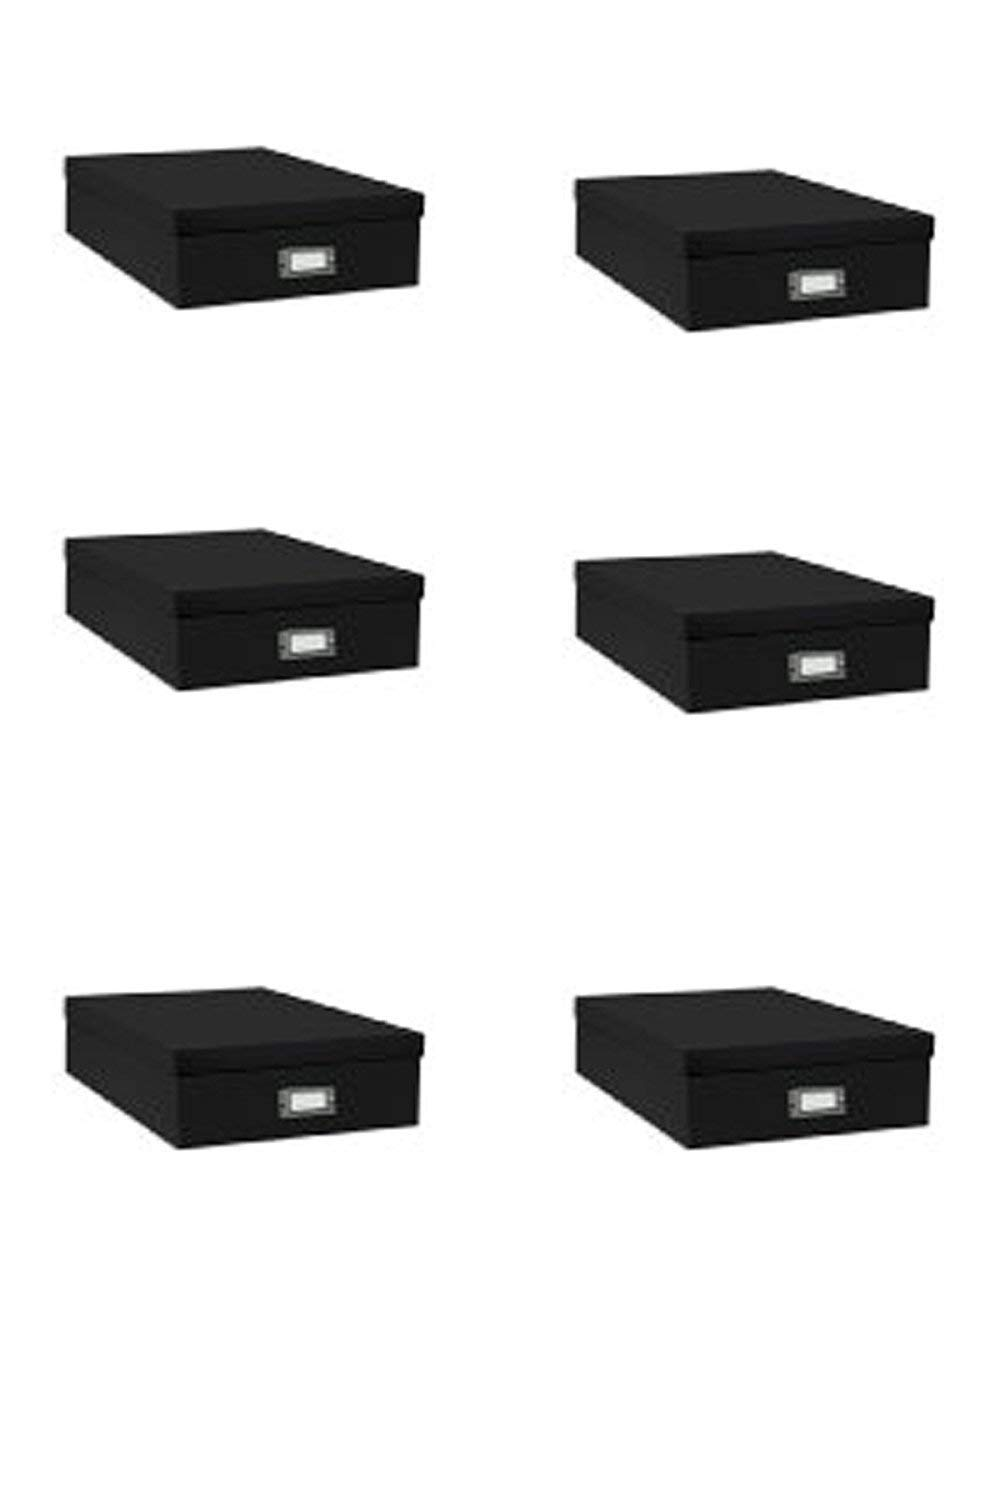 Pioneer Jumbo Scrapbook Storage Box, Black, 14.75 Inch X 13 Inch X 3.75 Inch,6-Pack